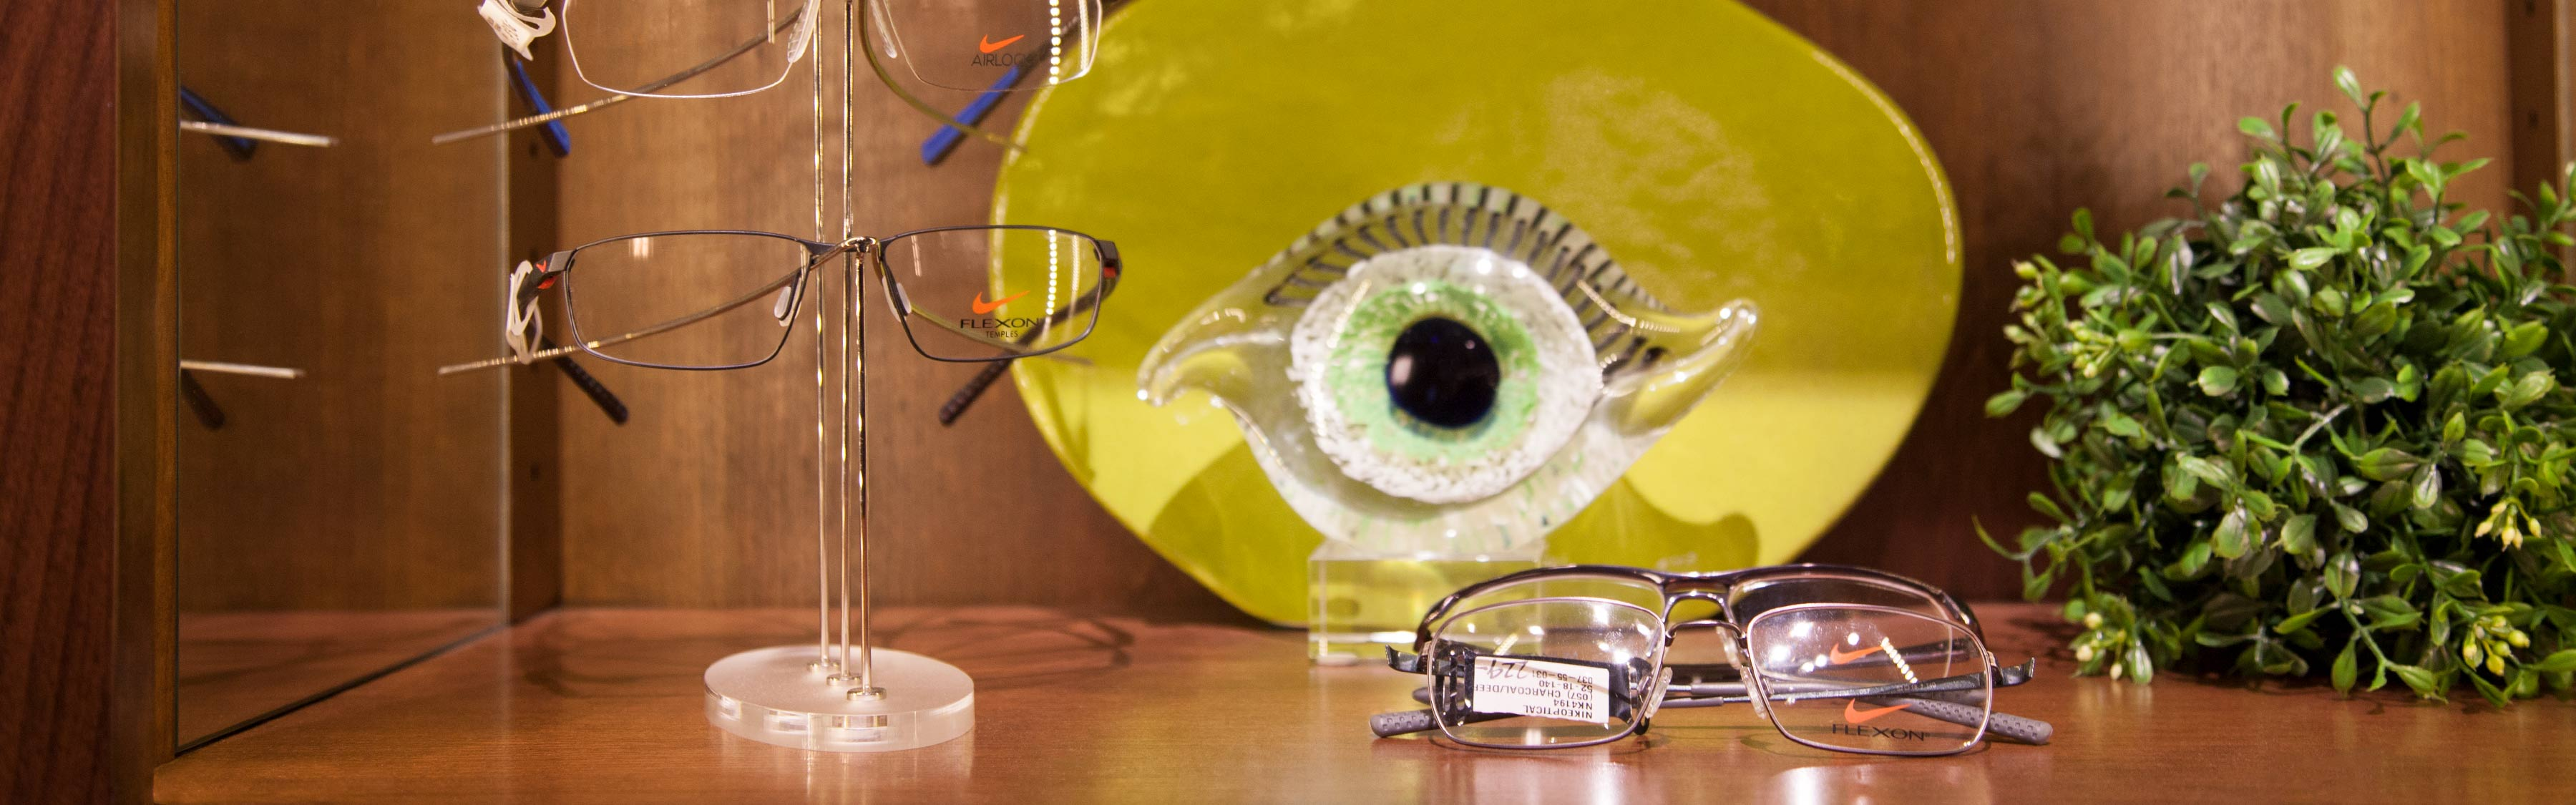 blink-vision-eyewear-glasses-on-table-01